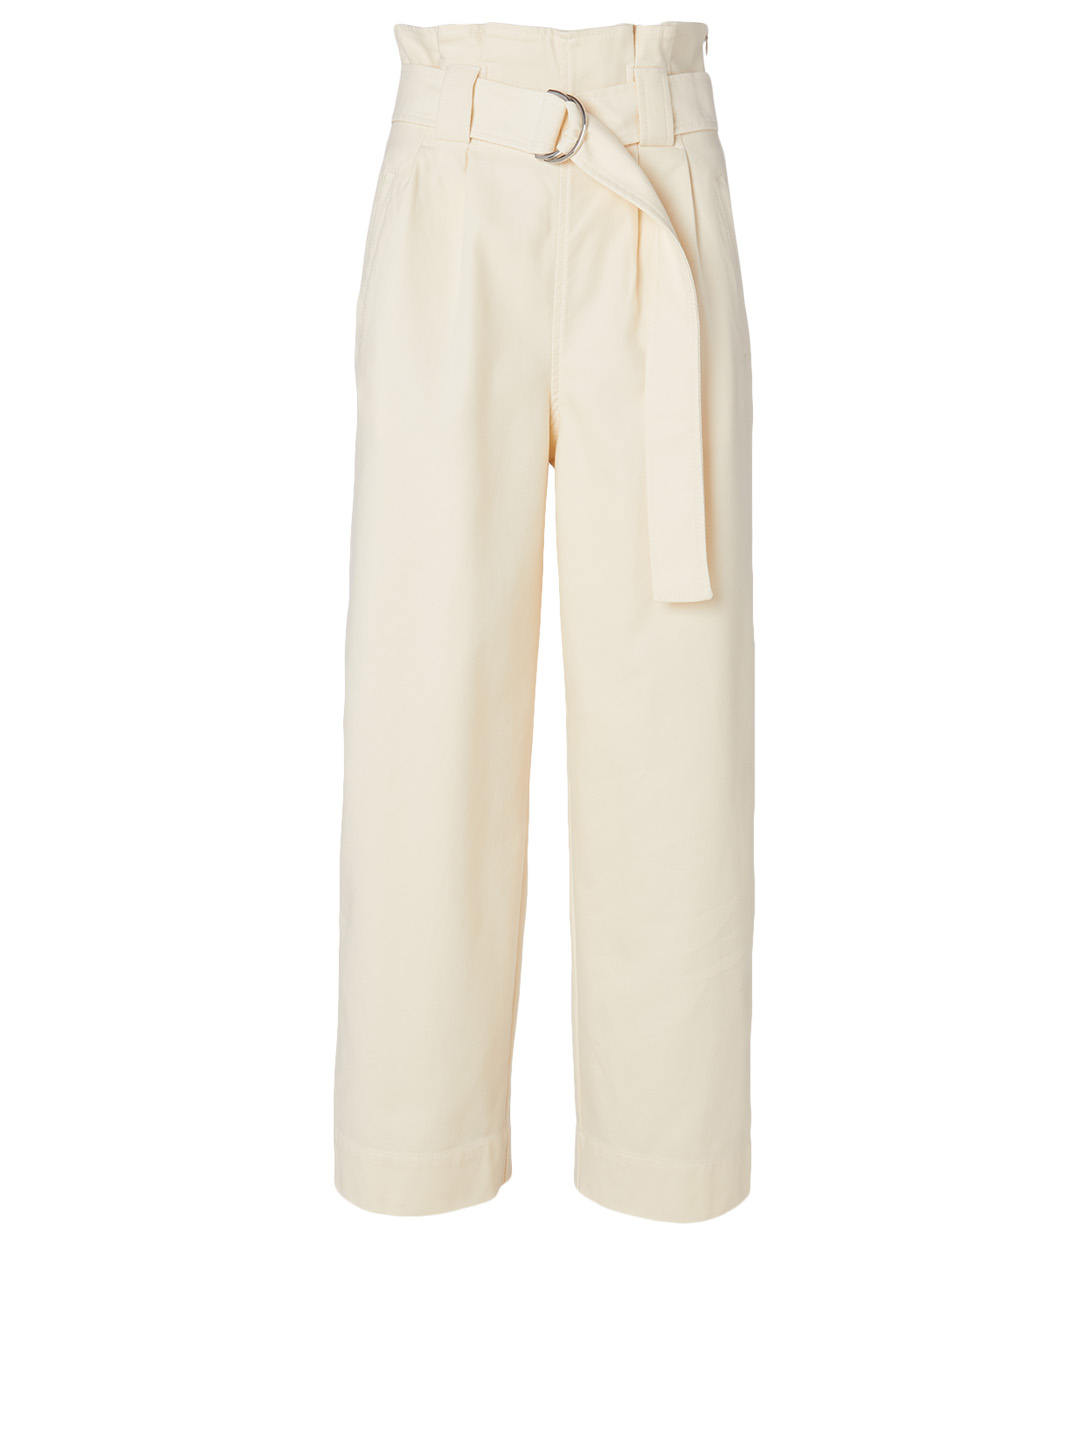 GANNI Chino Pants With Belt Women's White